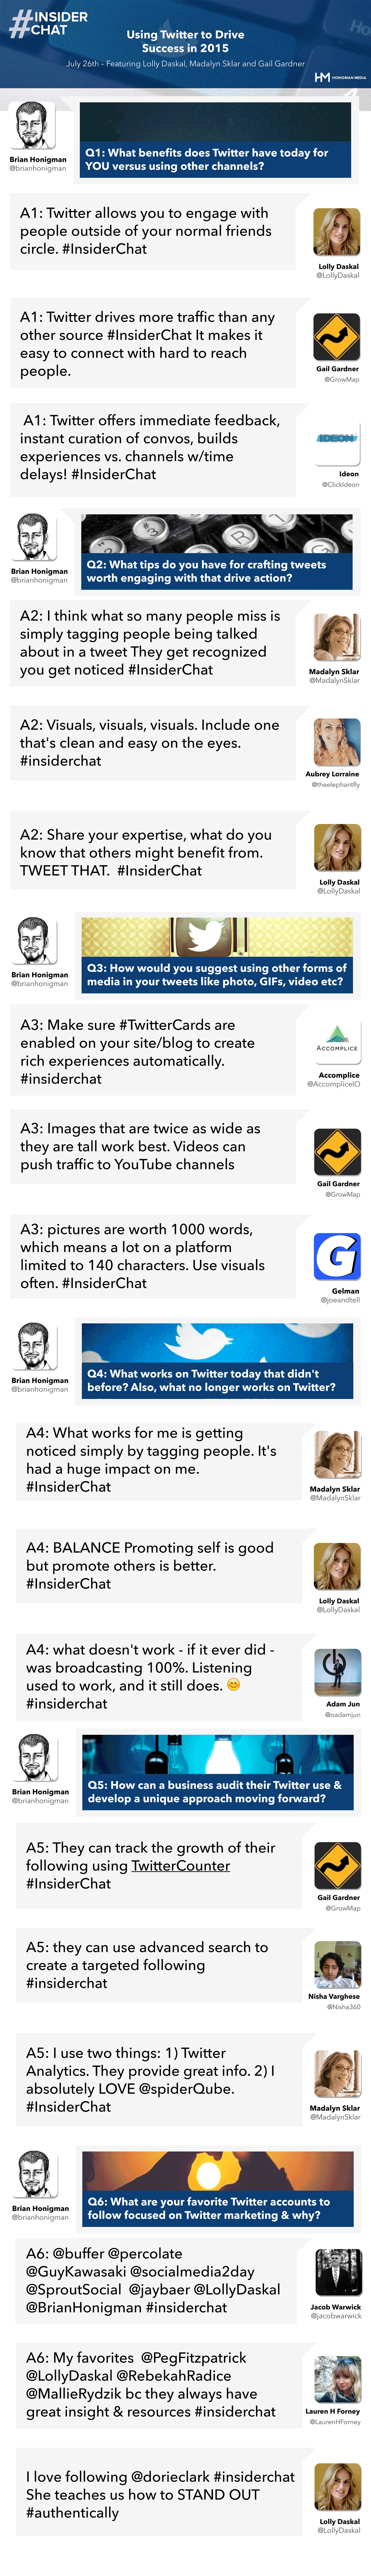 Insider-chat-infographic2-1